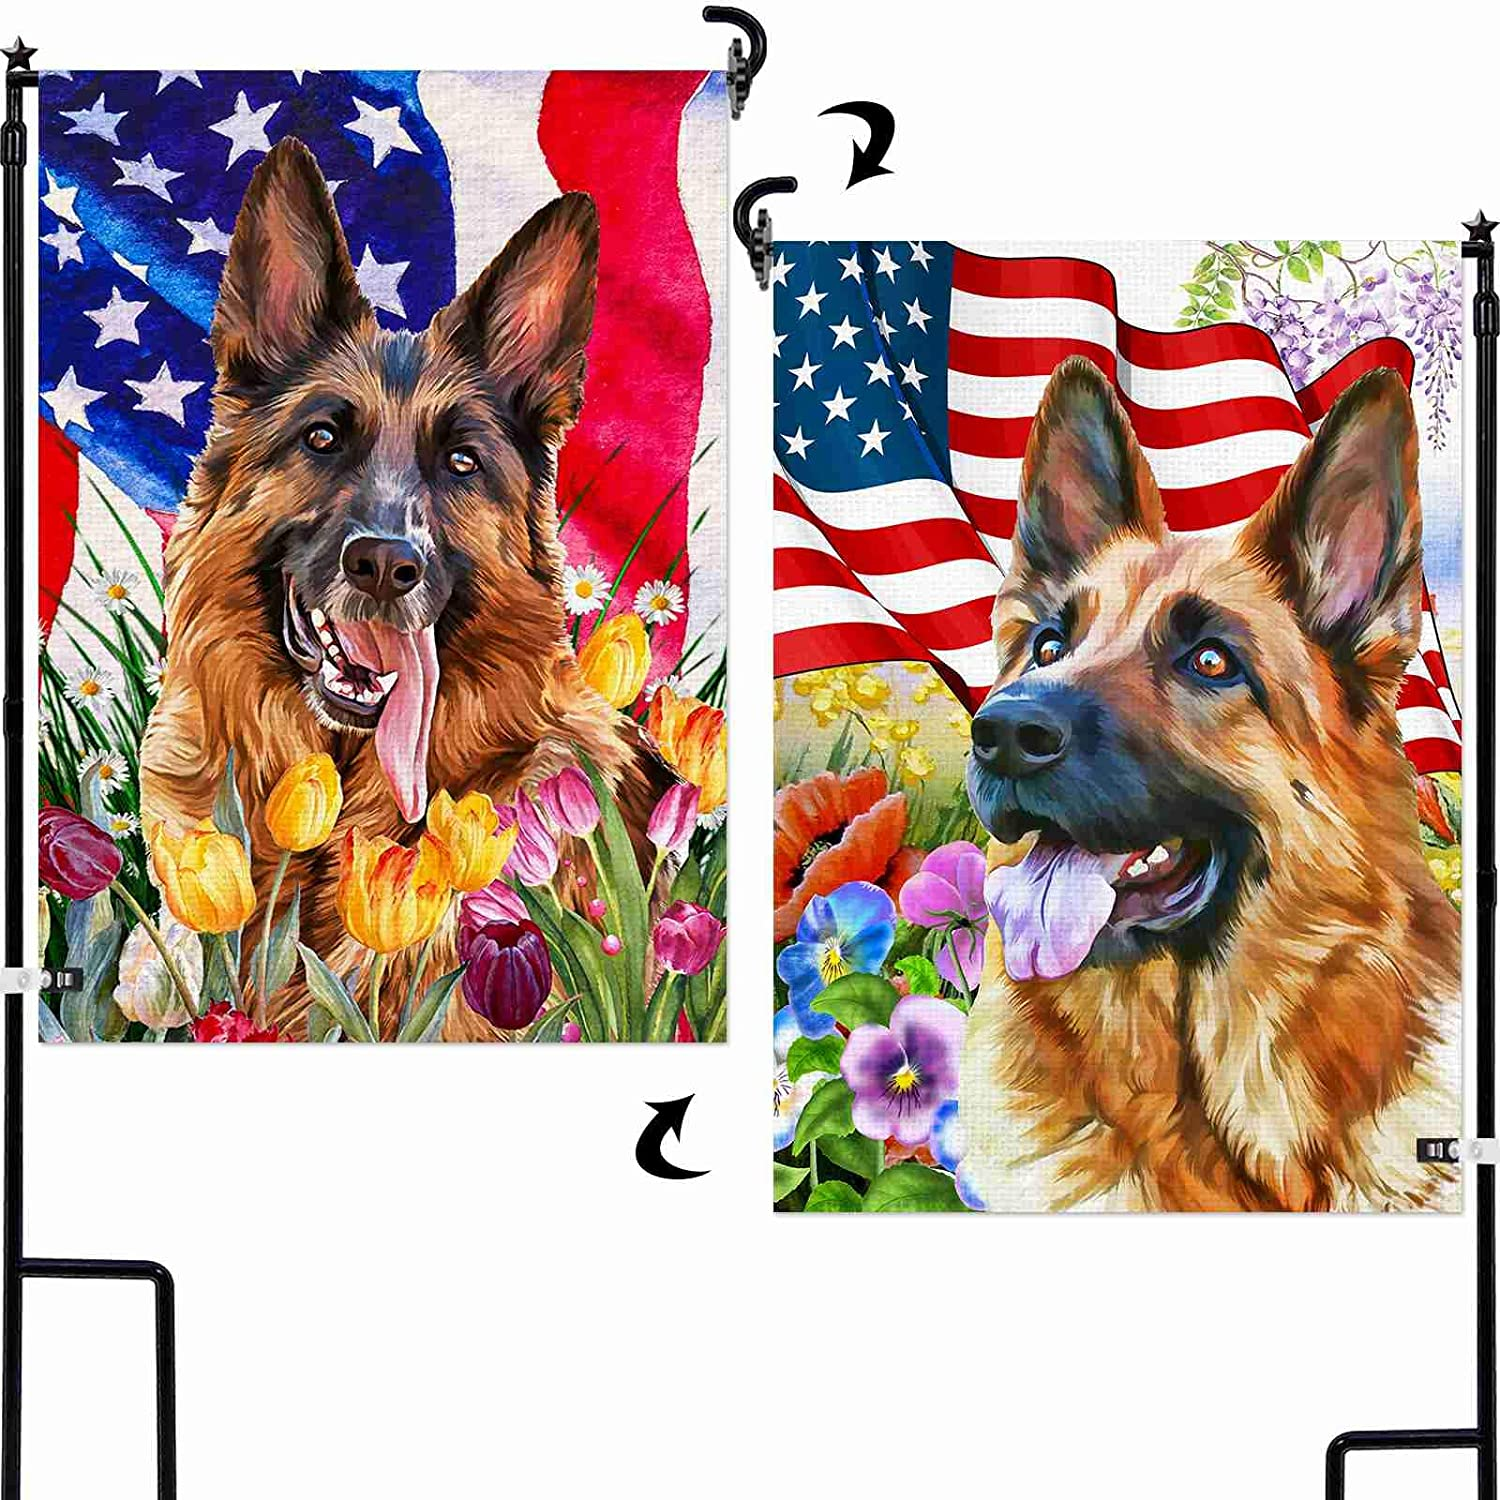 AOKDEER German Shepherd Garden Flag 12.5x18 Prime, 2-in-1 Double Sided Burlap Dog Decor House Flags, American Flag Patriotic Yard Signs Gift for Patio Lawn Outdoor Decor, Different Front and Back Flag